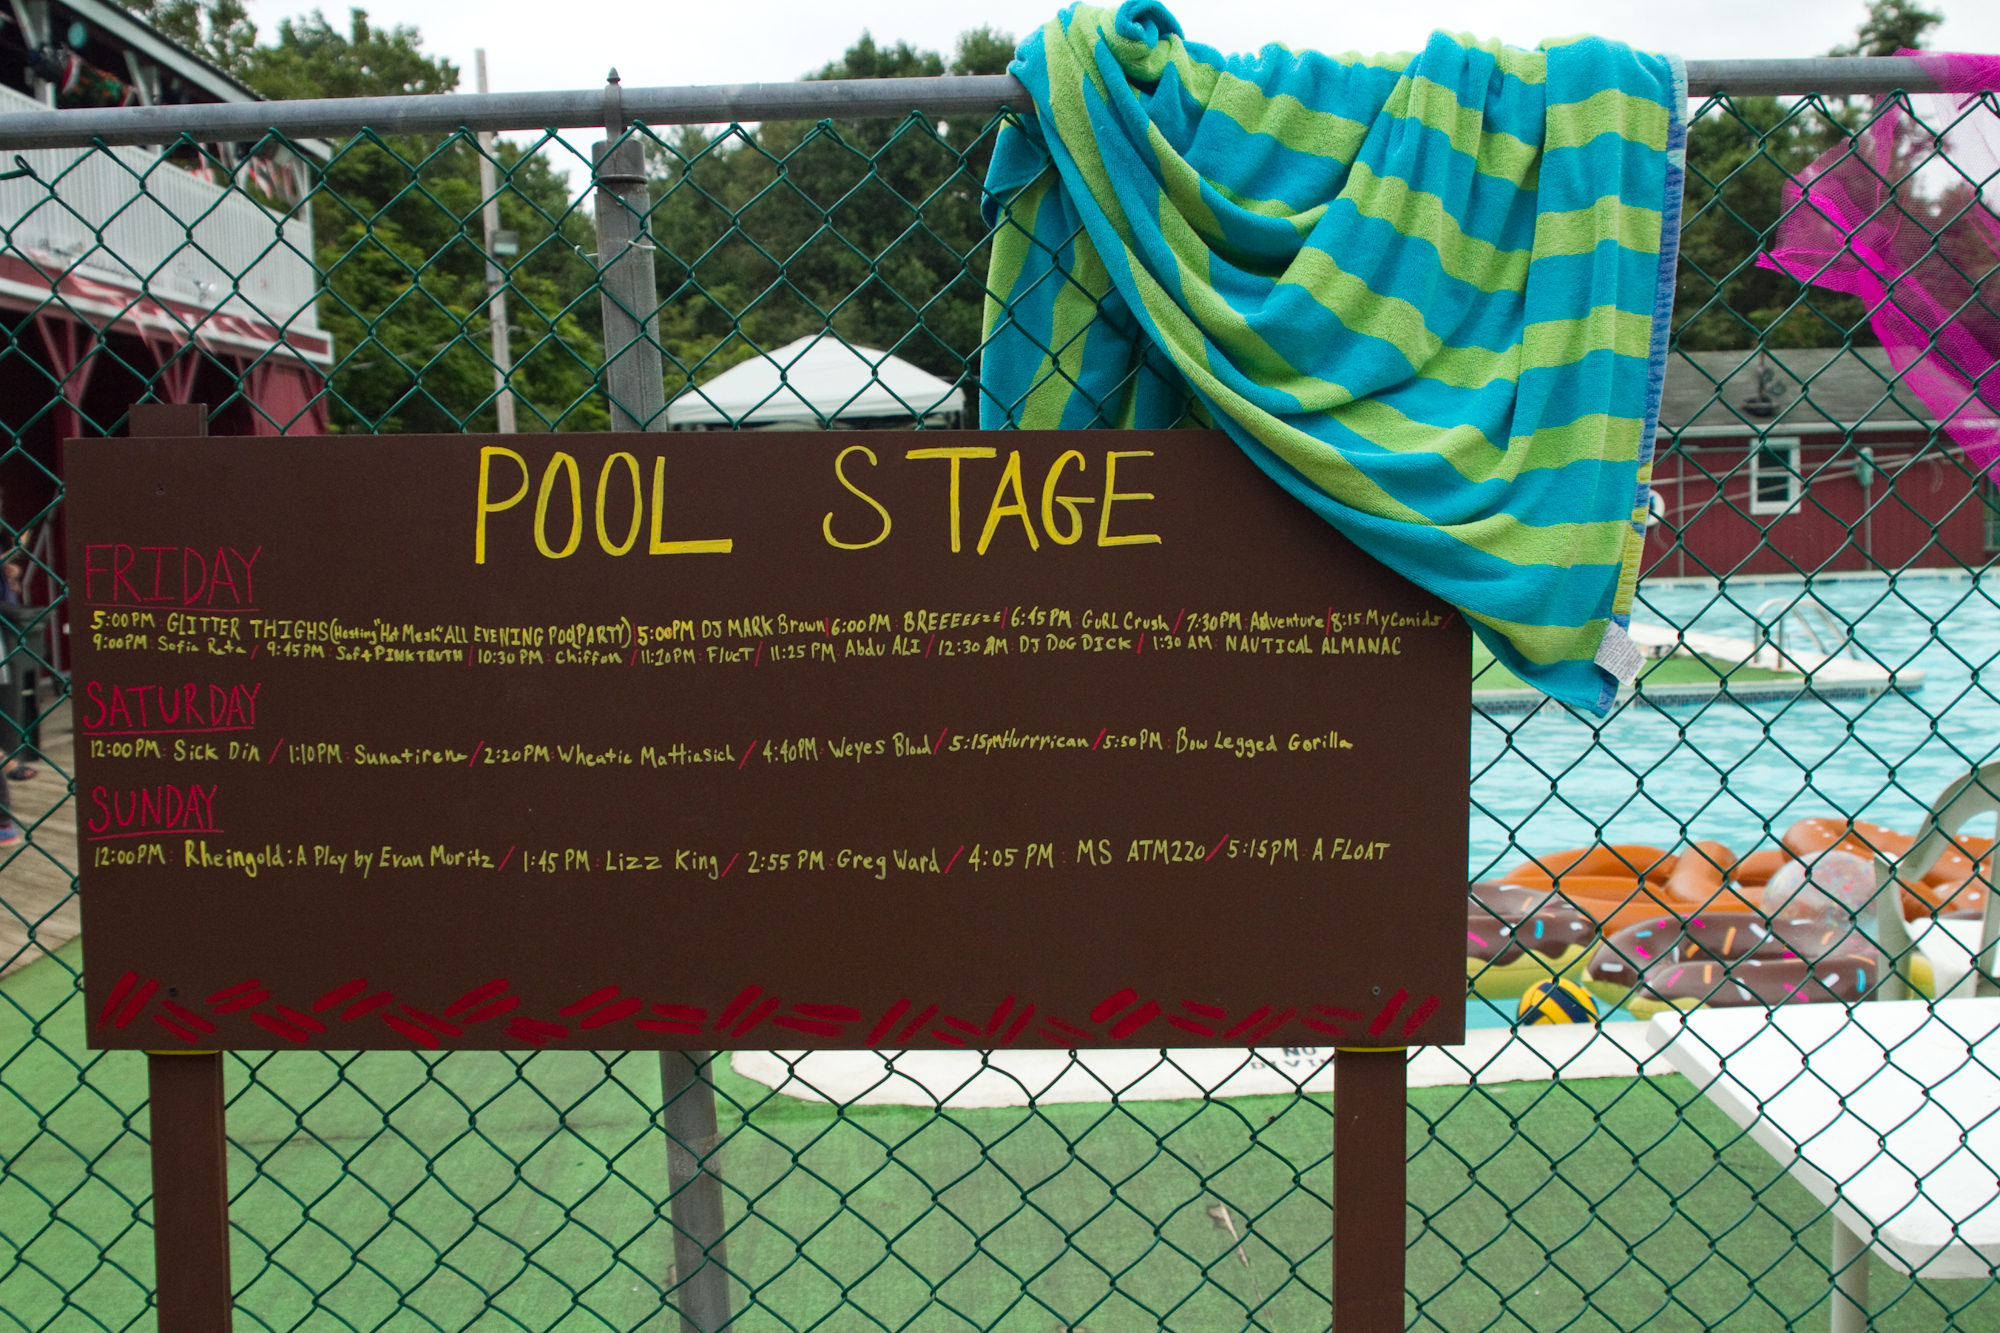 Pool stage at Fields Festival